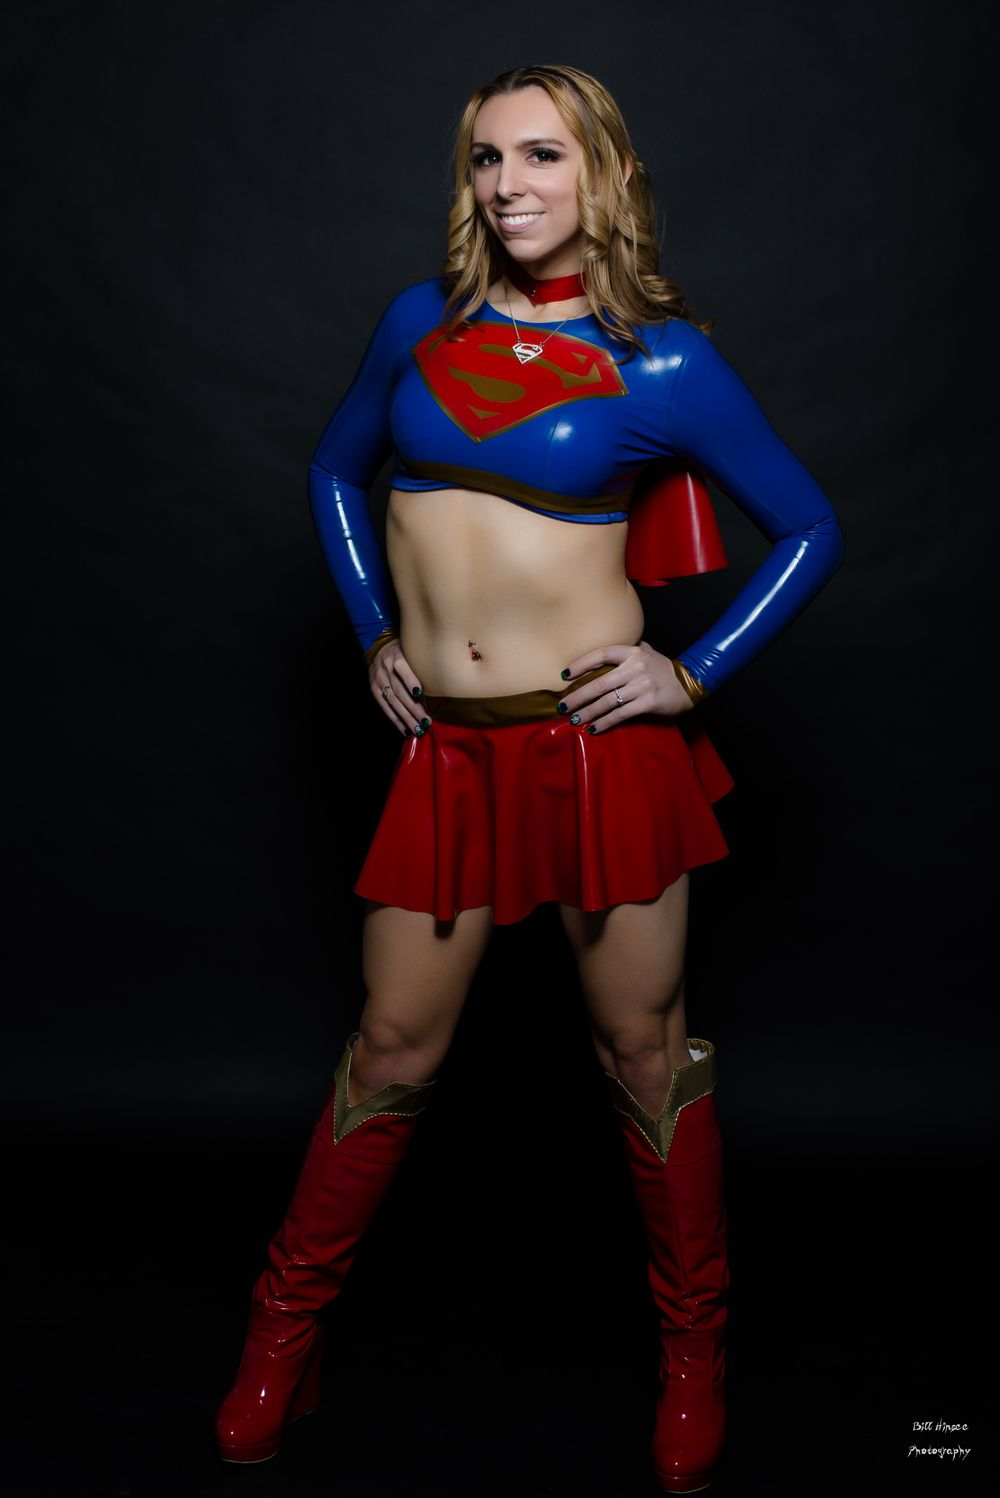 SuperGirl #Cosplay Movies & Comics Wallpapers http://www ...